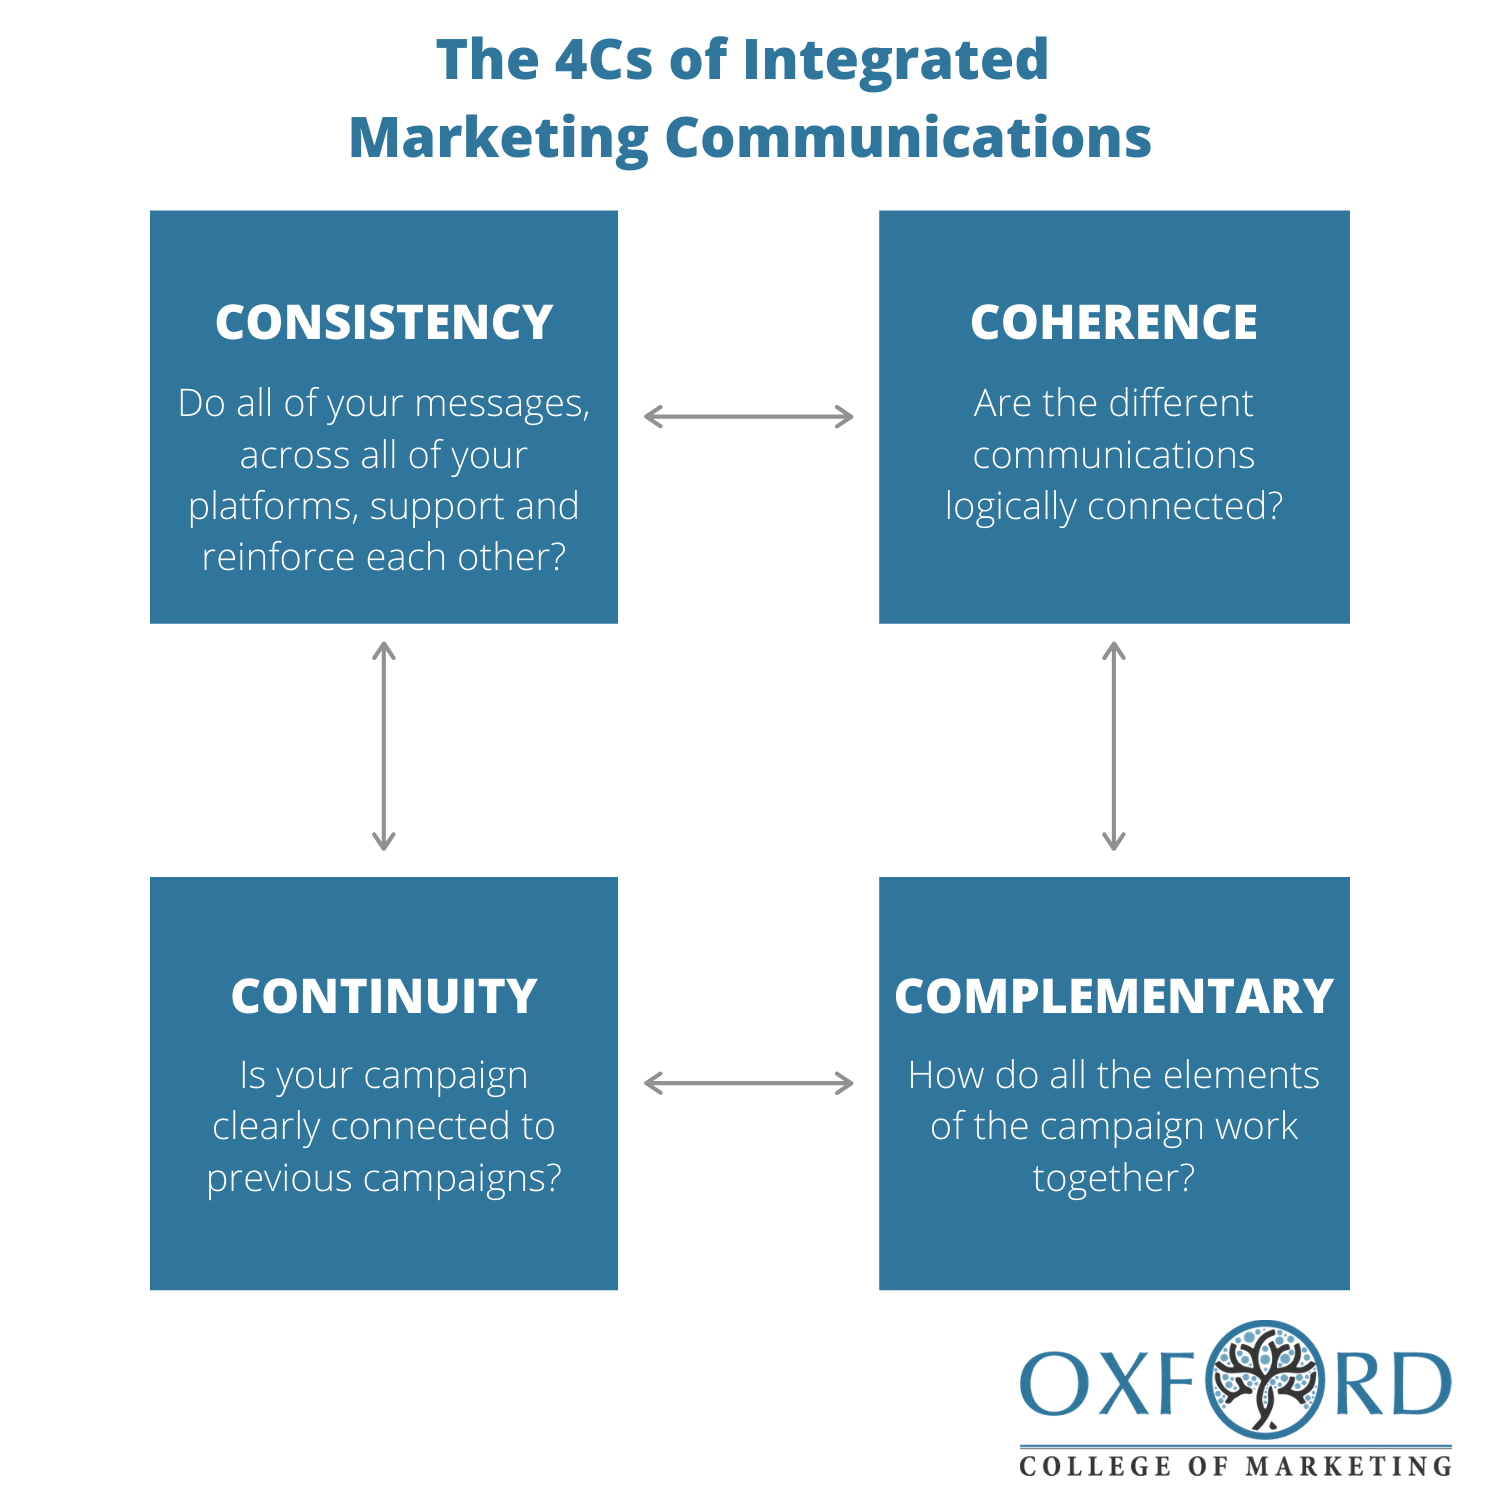 The 4Cs of Integrated Marketing Communications